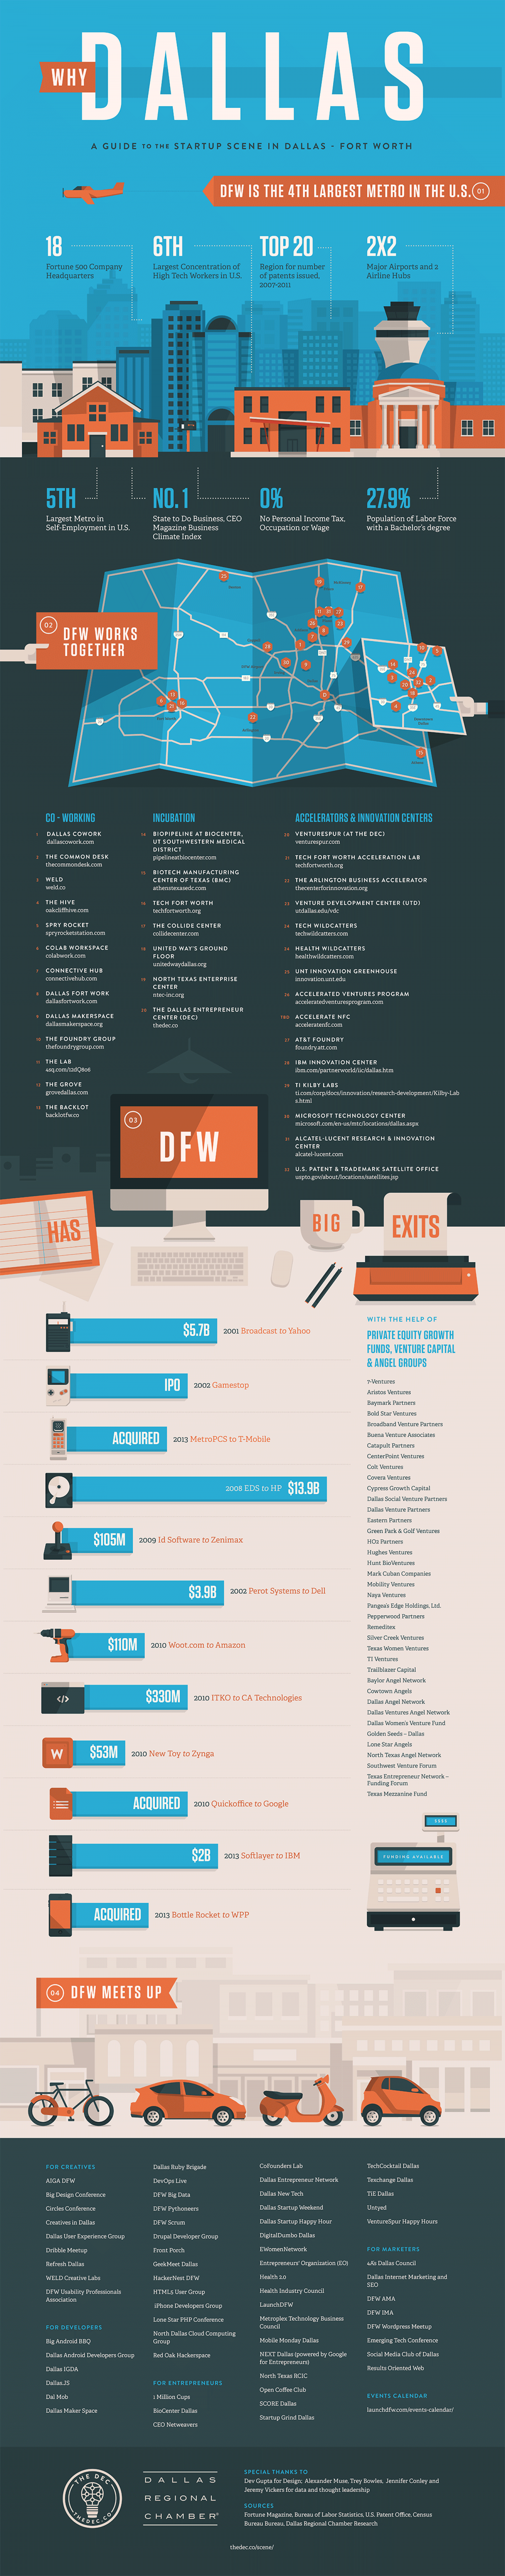 Why Dallas - A Guide to the Startup Scene in Dallas-Fort Worth Infographic